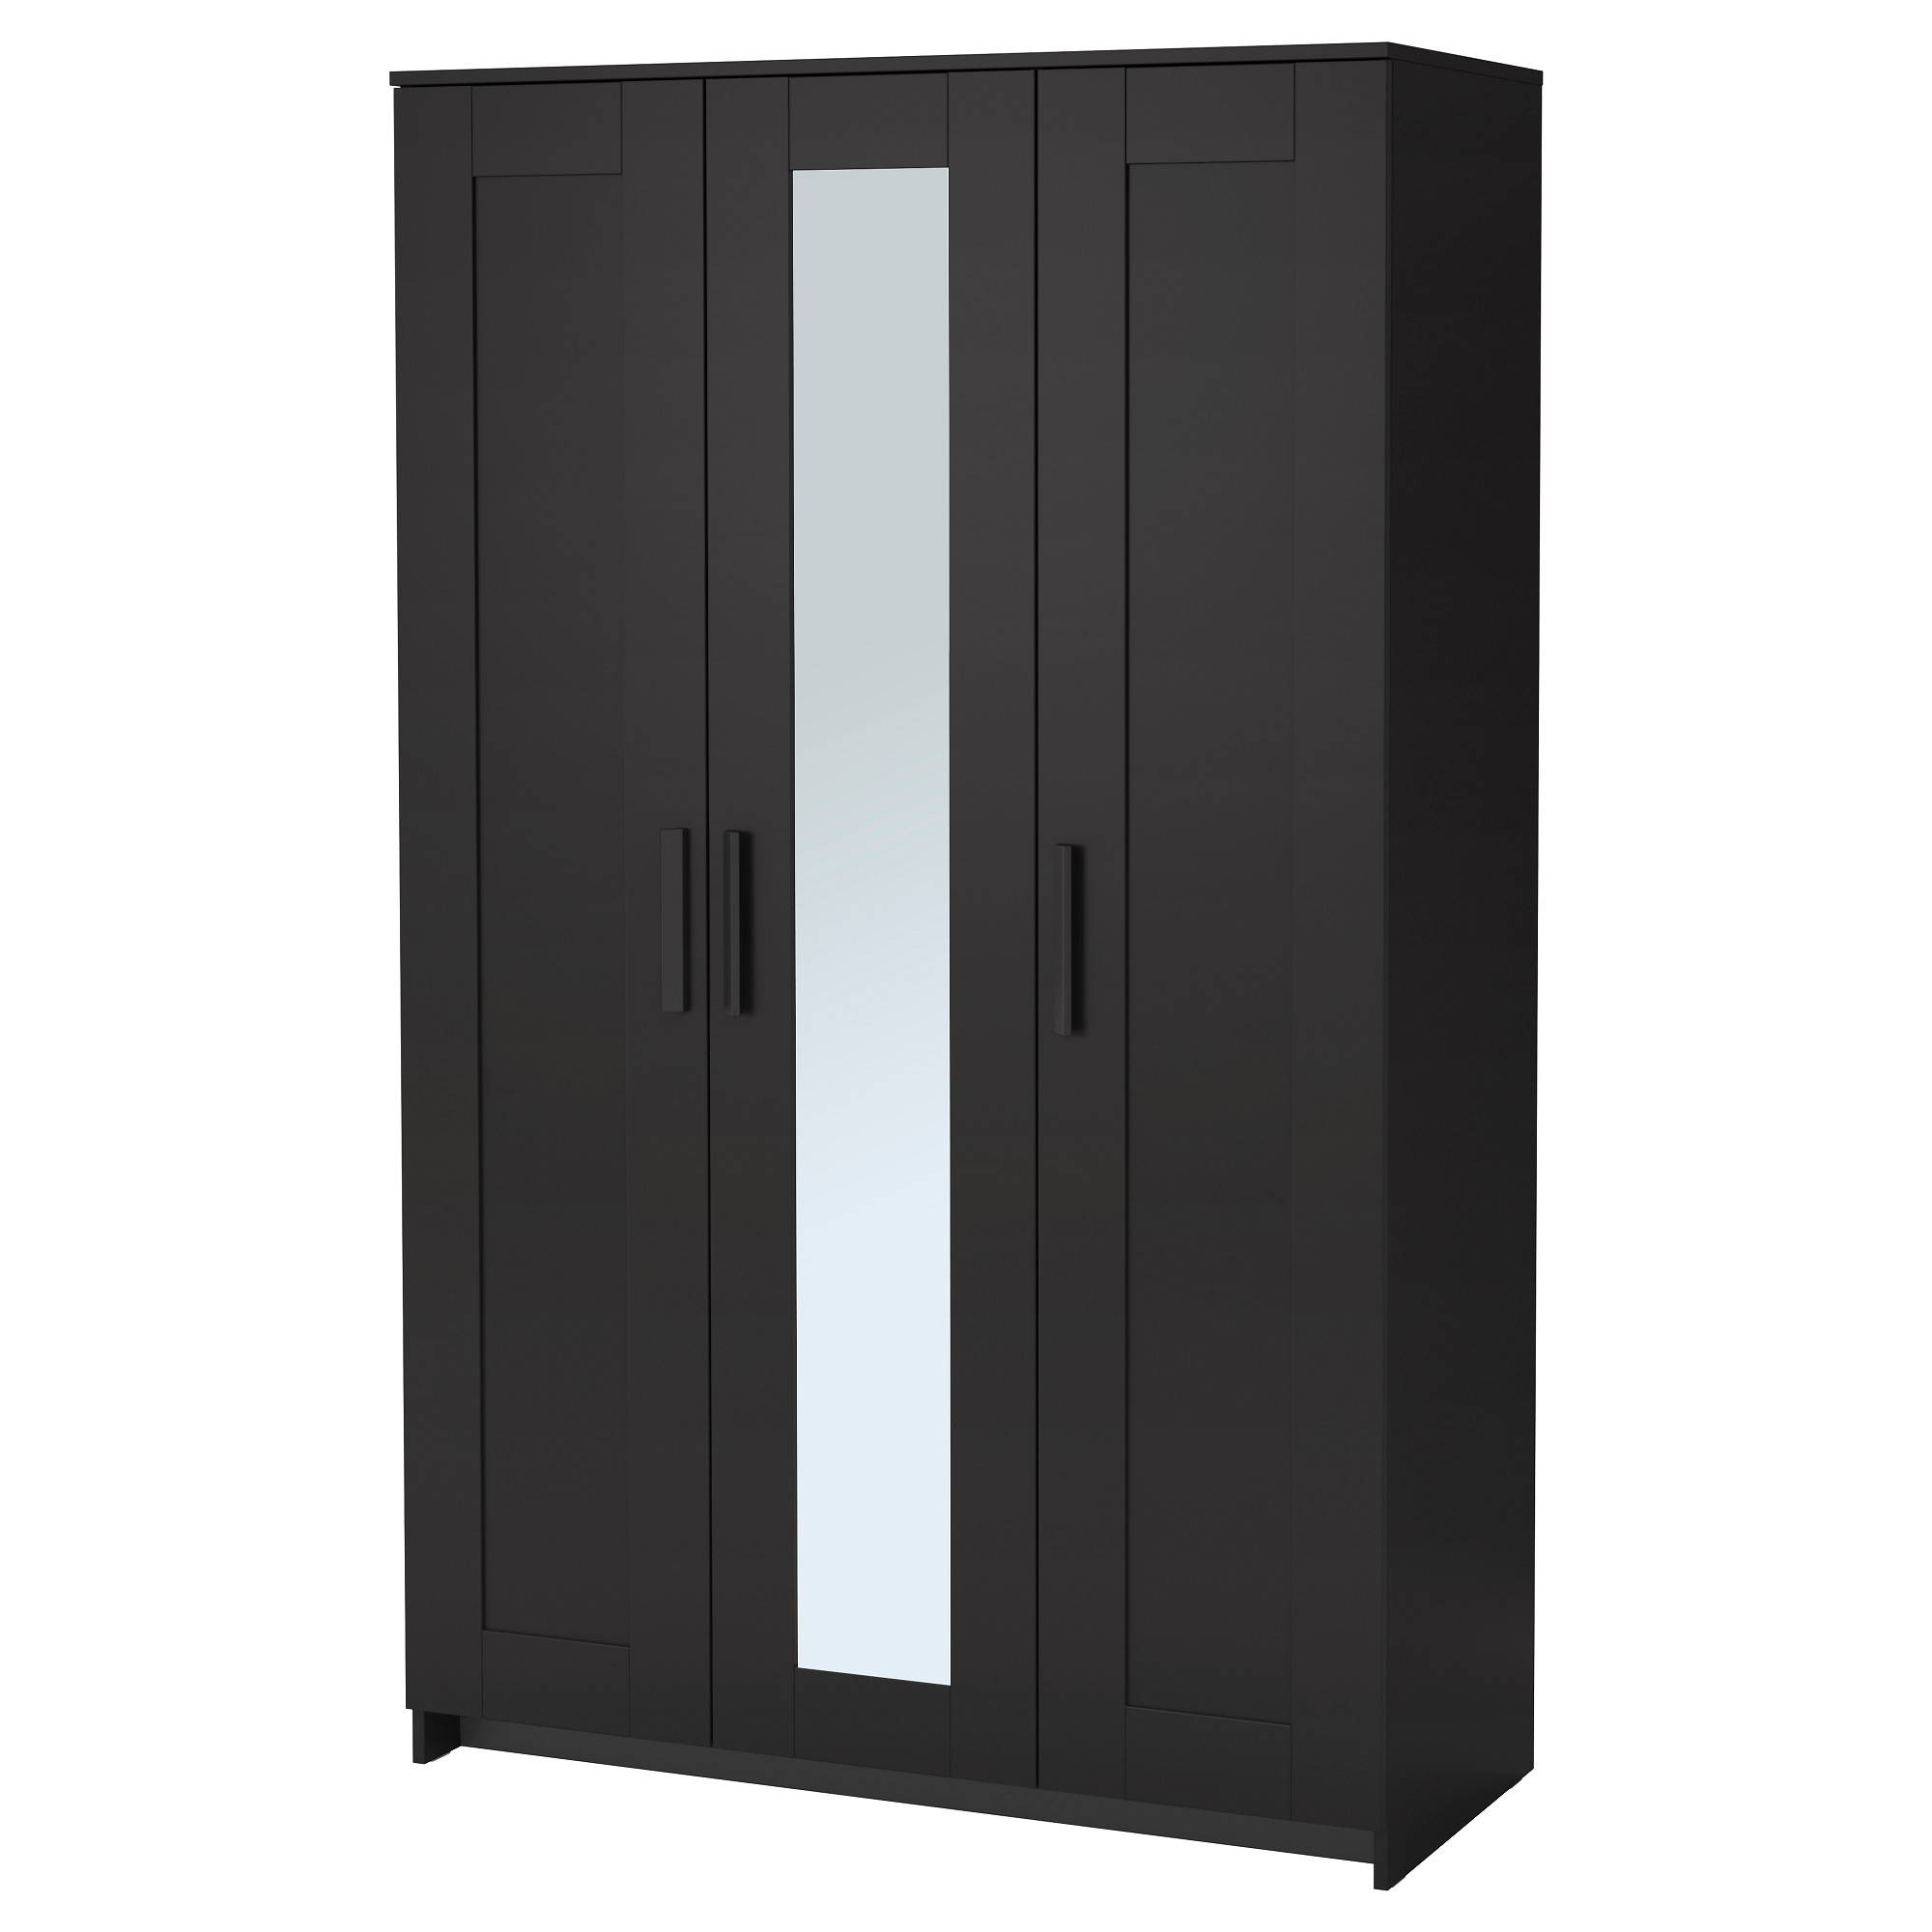 Brimnes Wardrobe With 3 Doors - Black - Ikea with regard to Black 3 Door Wardrobes (Image 4 of 15)